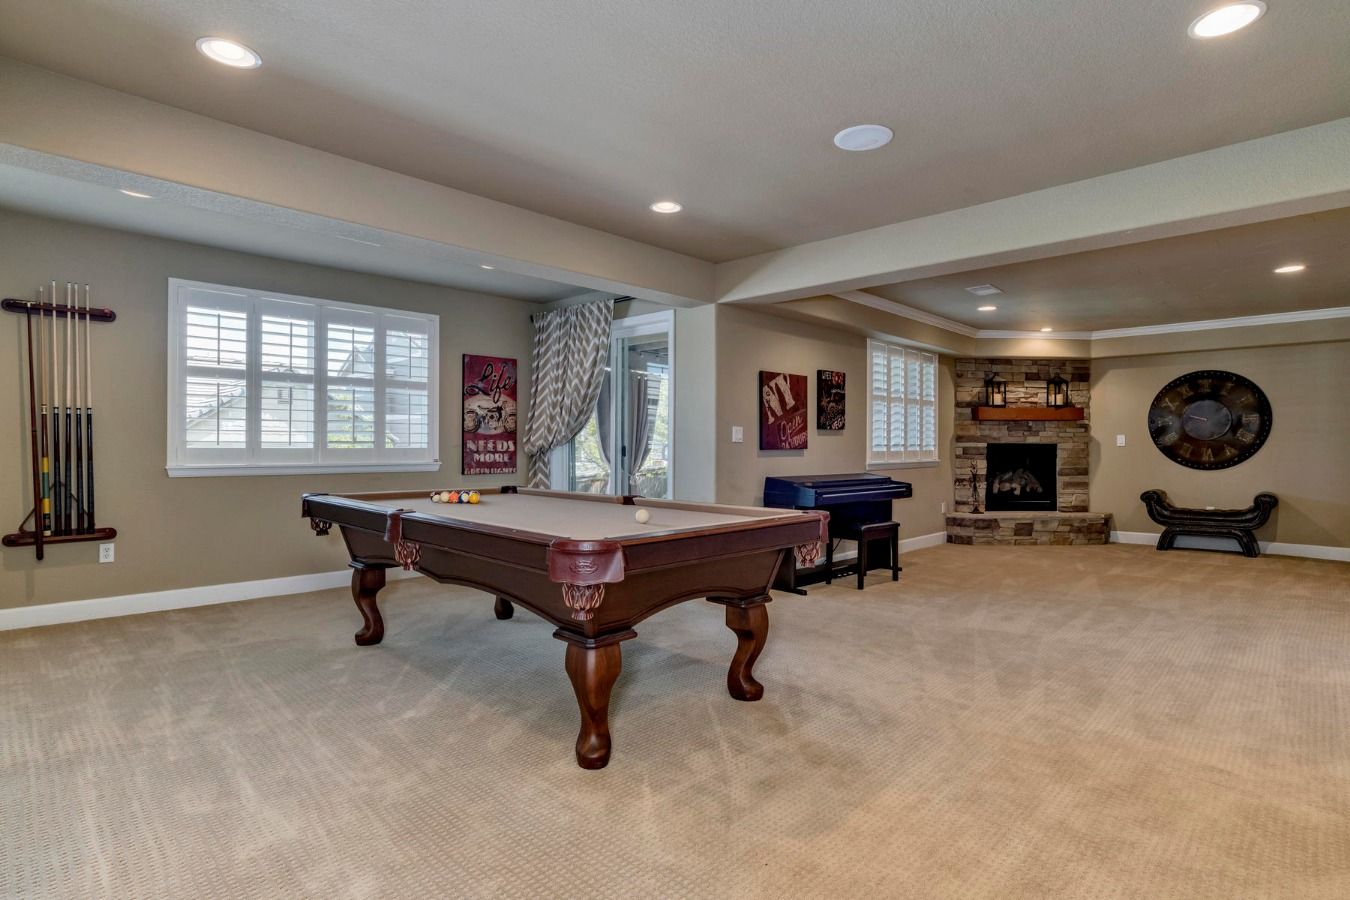 Extra Large Room for a Pool or Game Table Here!